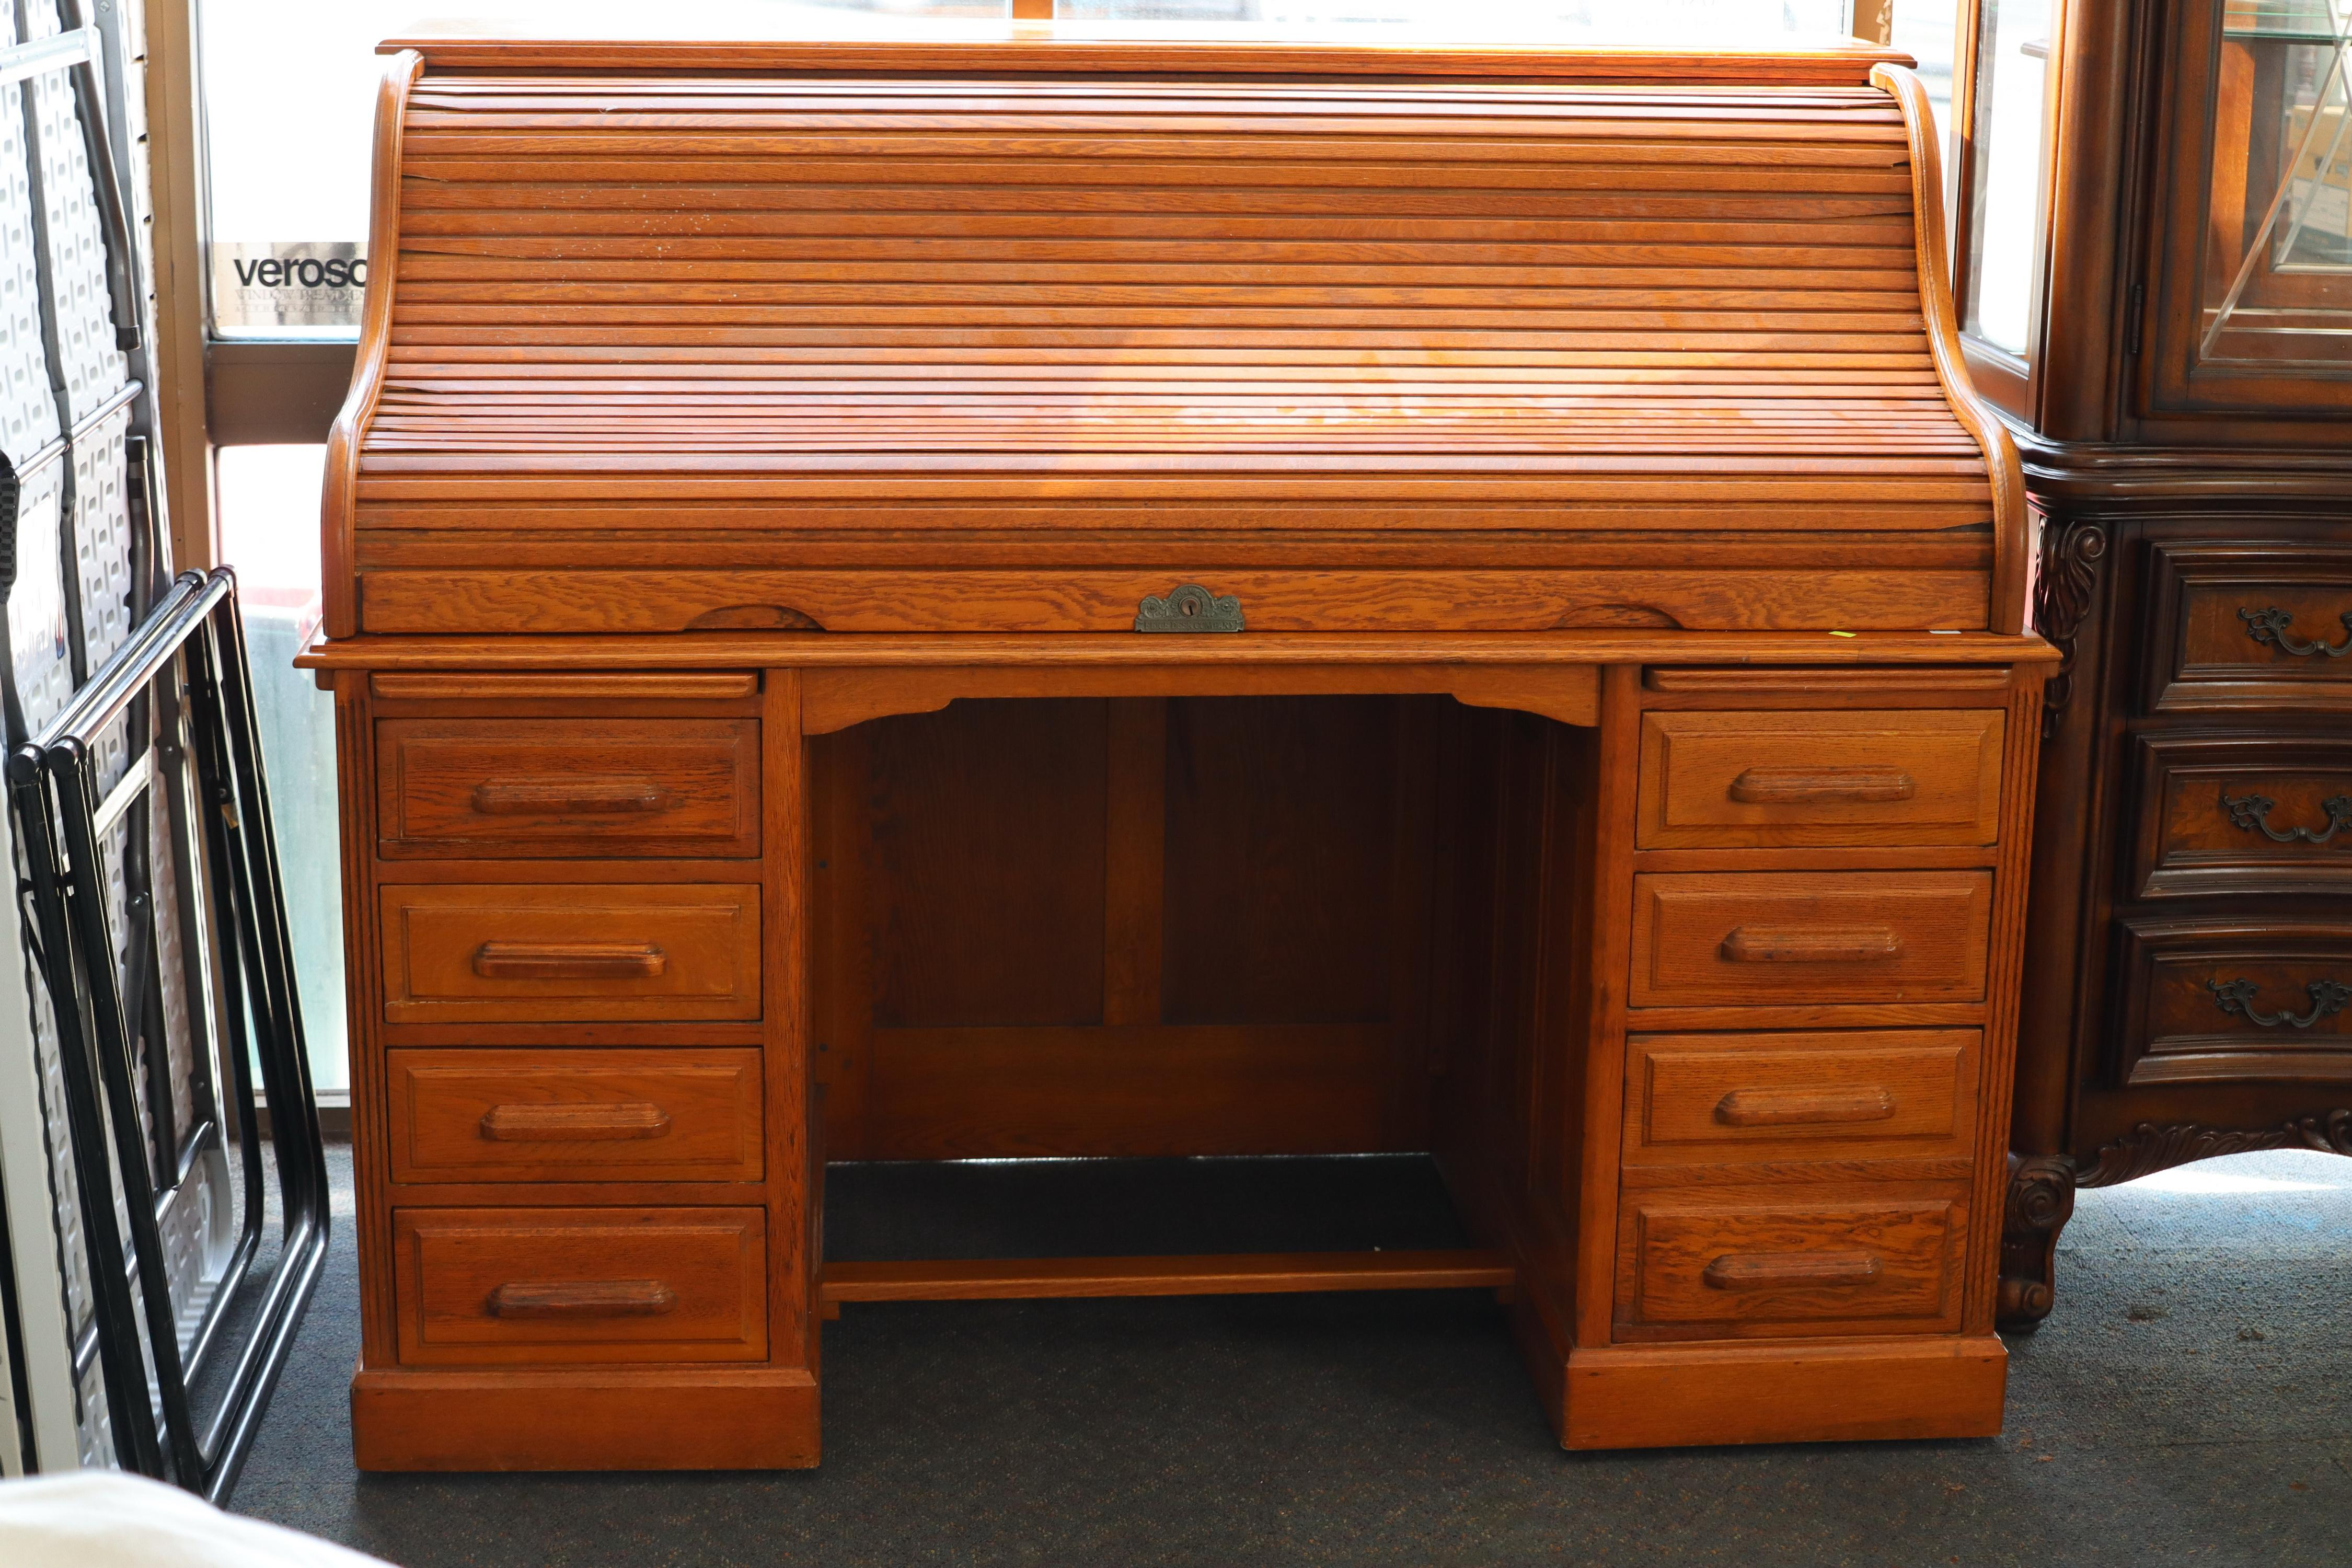 LARGE OAK ROLL TOP DESK, FEIGE USA, FITTED INTERIORS, 8 DRAWERS, FOLD OUT SIDE PANELS, ROLL NEEDS ATTENTION